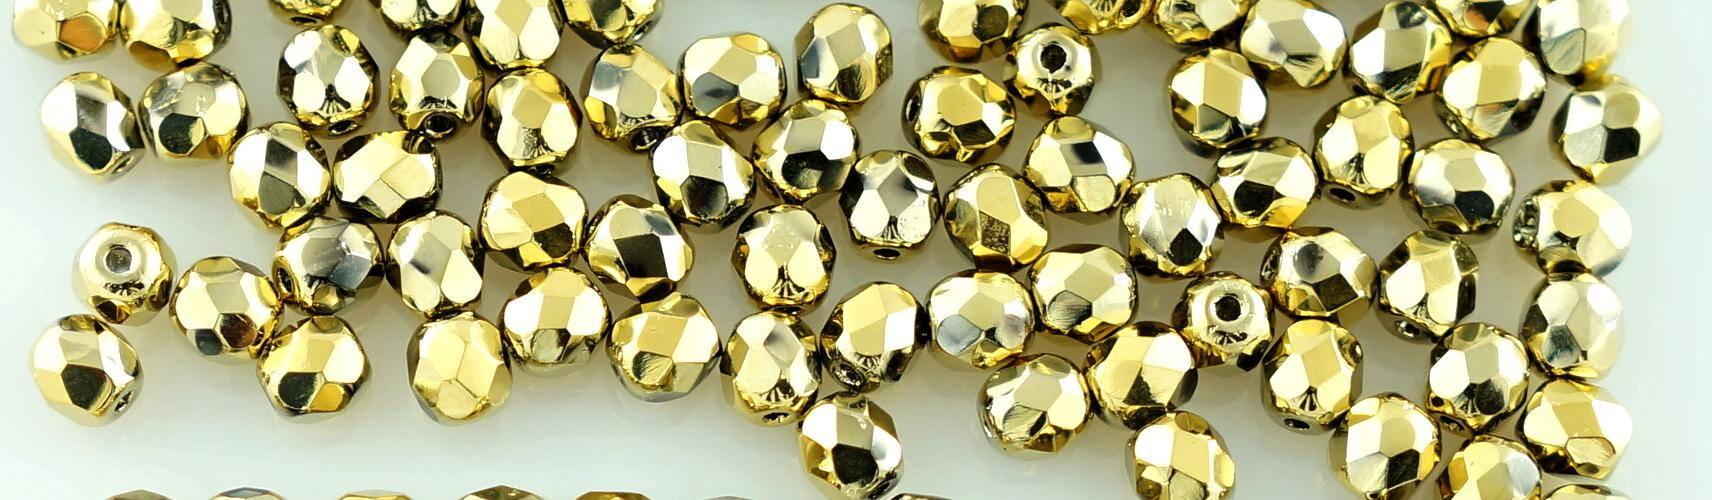 8a03428d0f637 Round Faceted Fire Polished Czech Beads - Picasso Beads - Czech ...